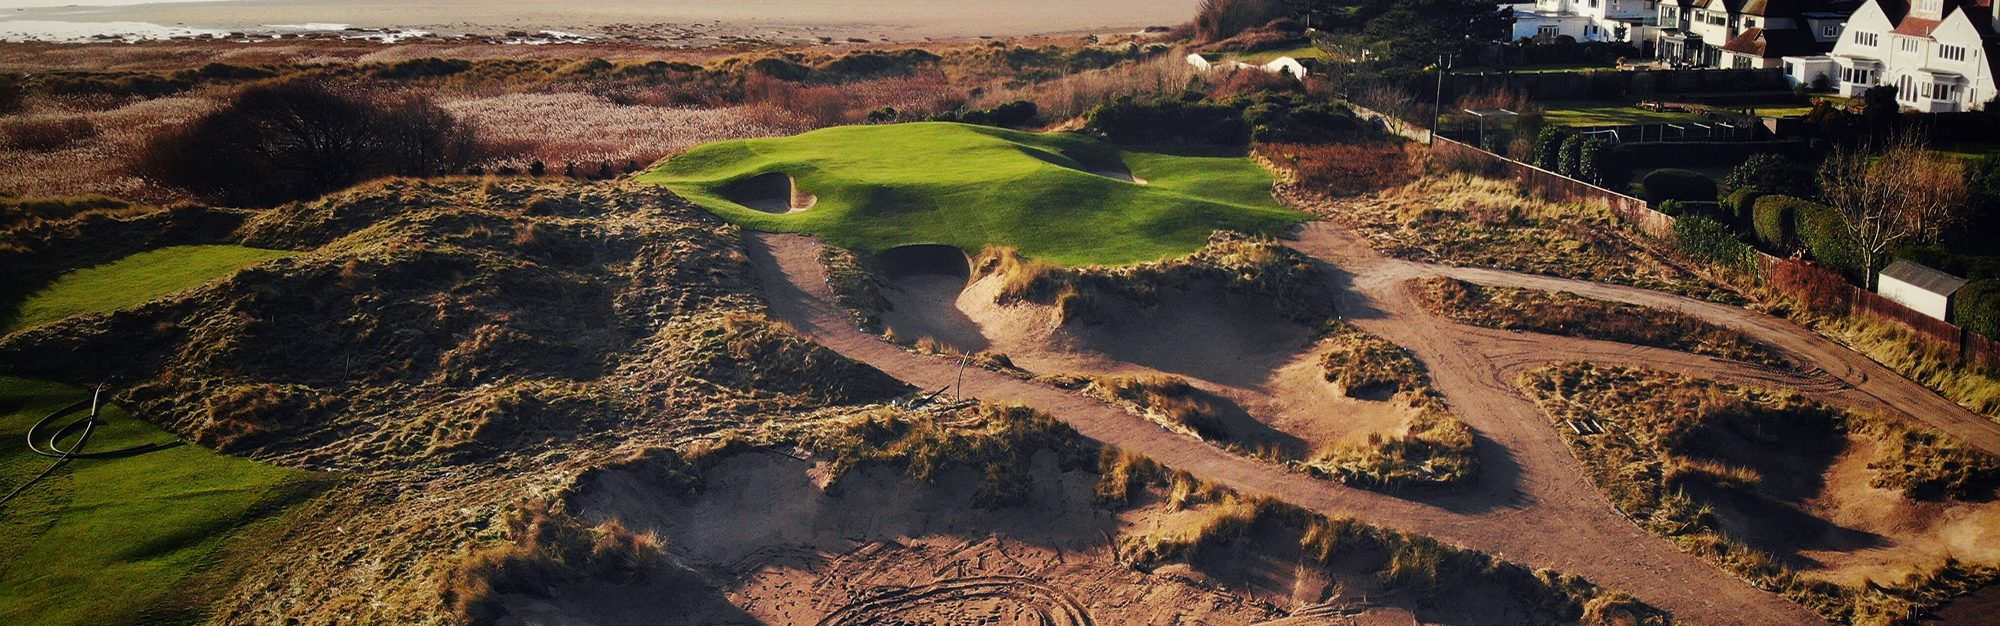 Royal Liverpool making major changes ahead of 2022 Open